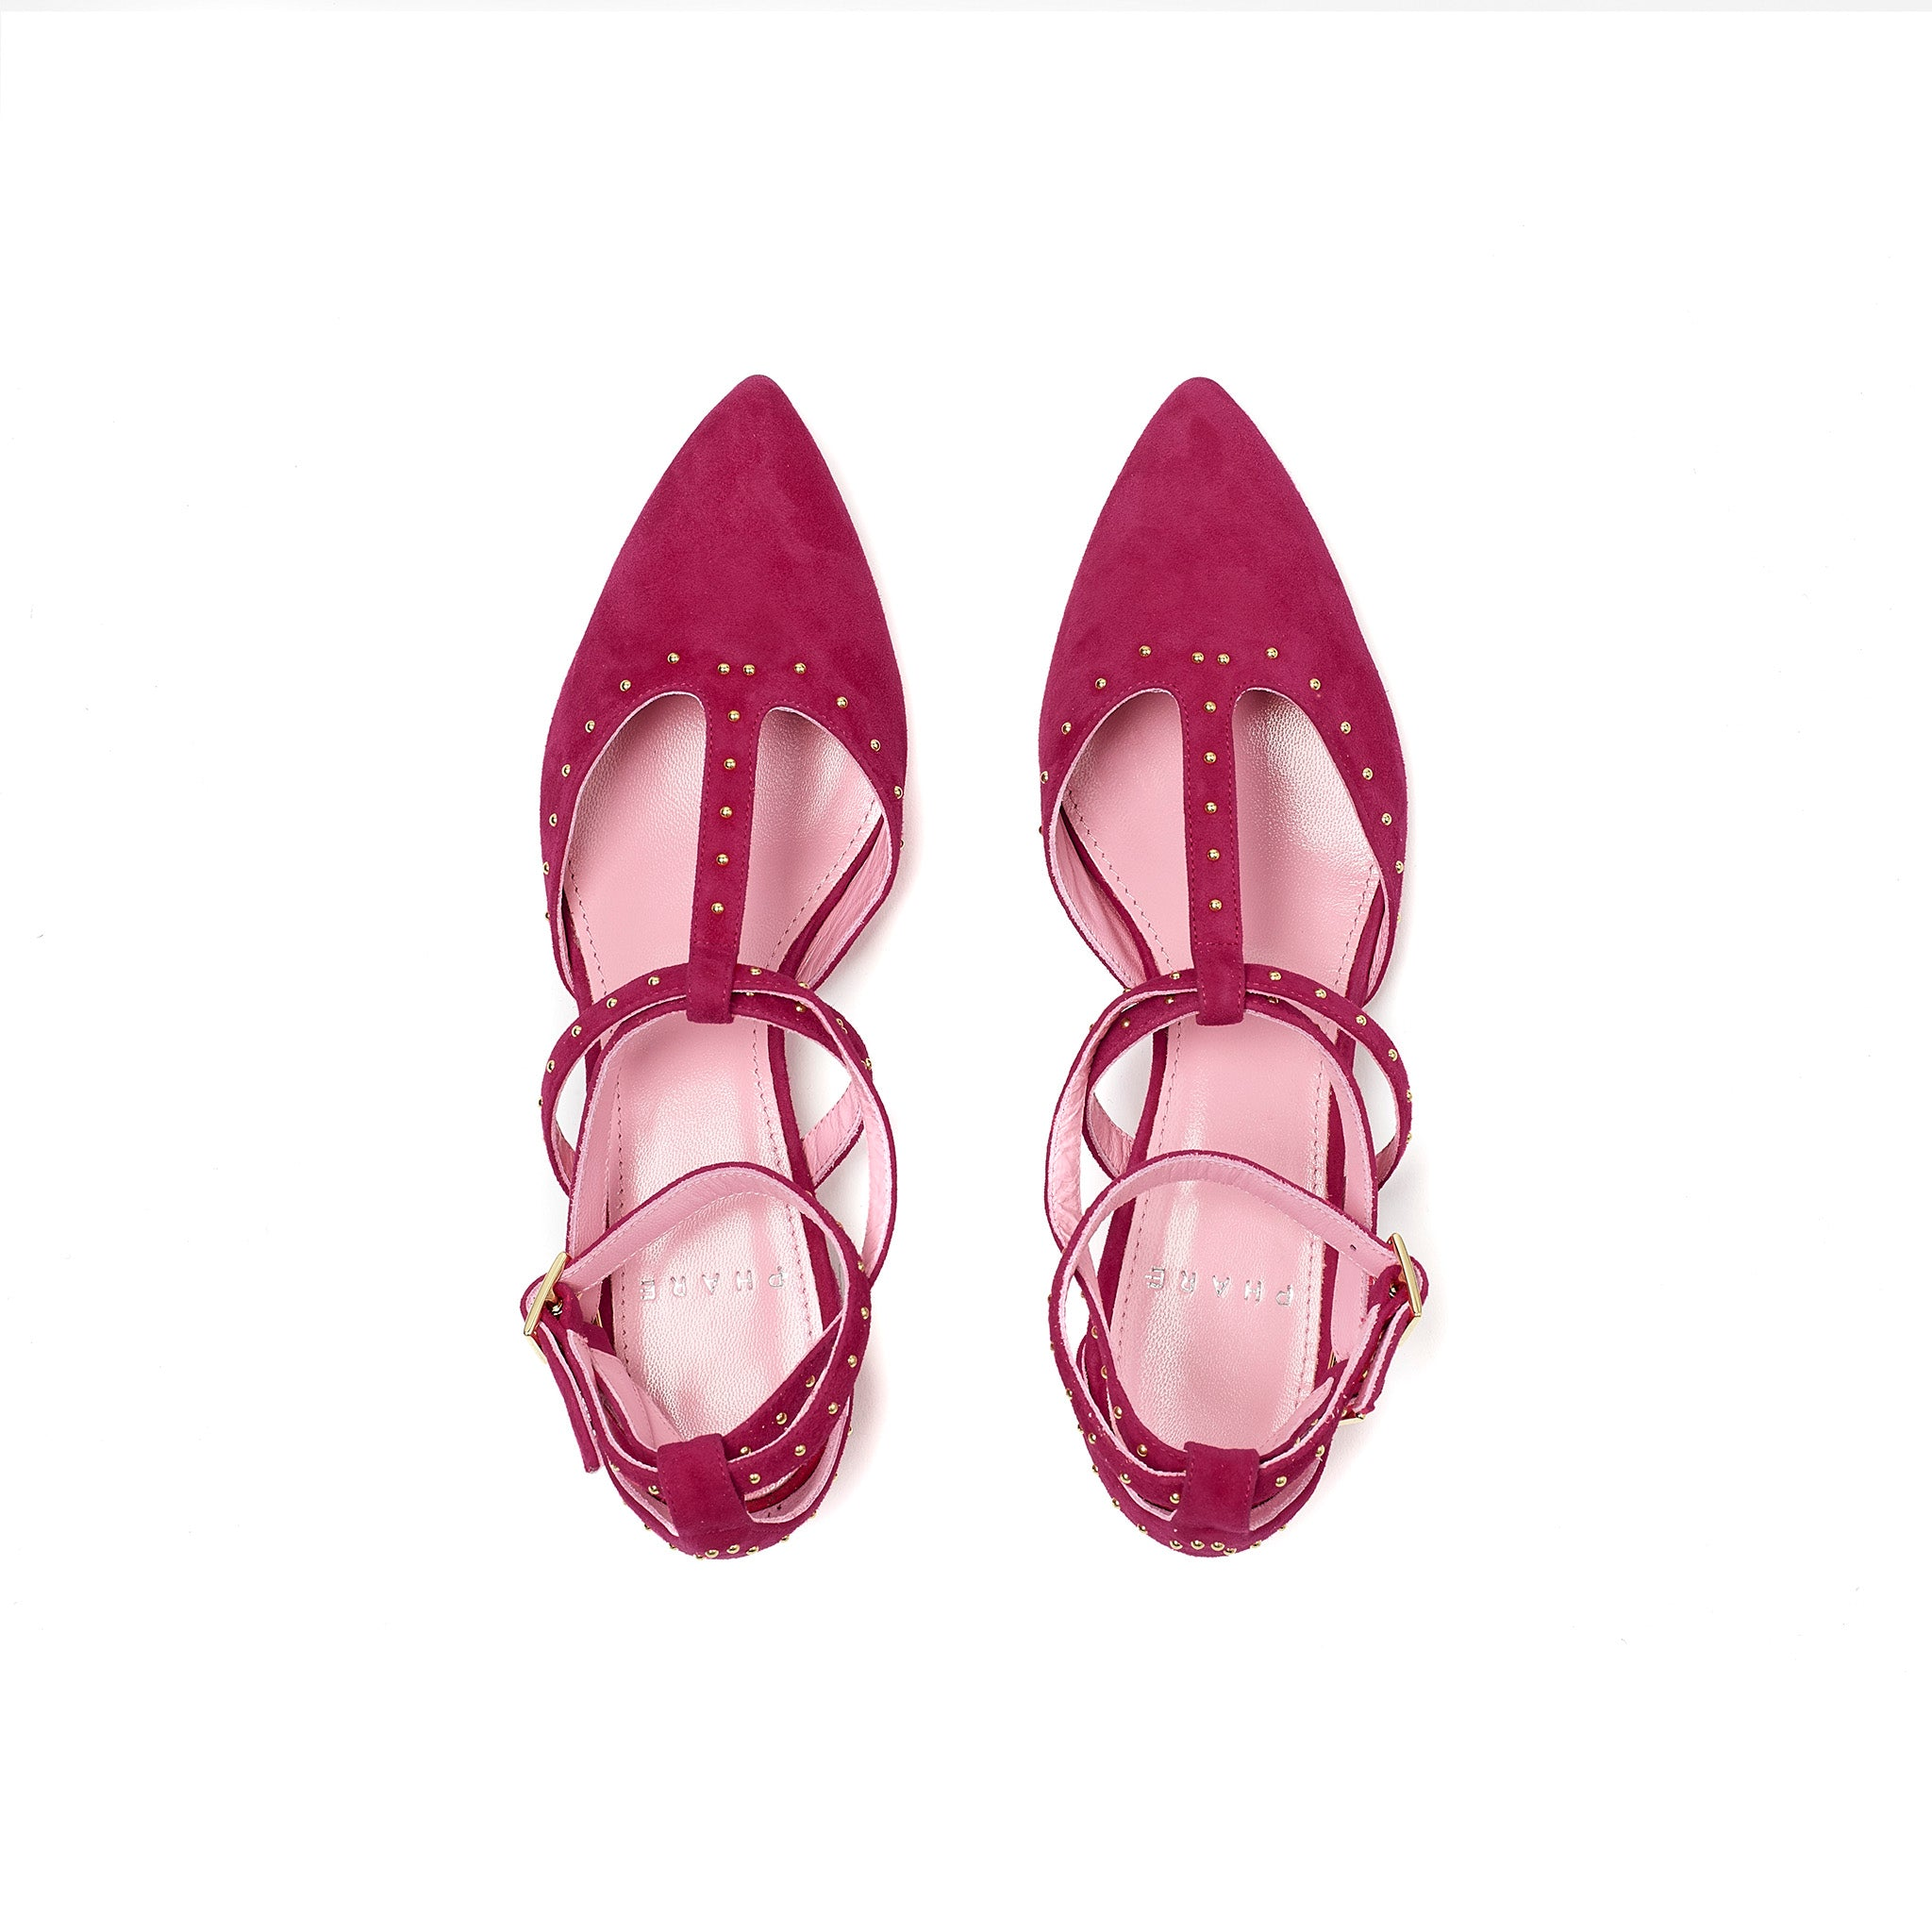 Phare Studded pointed flat in azalea suede with gold studs top view